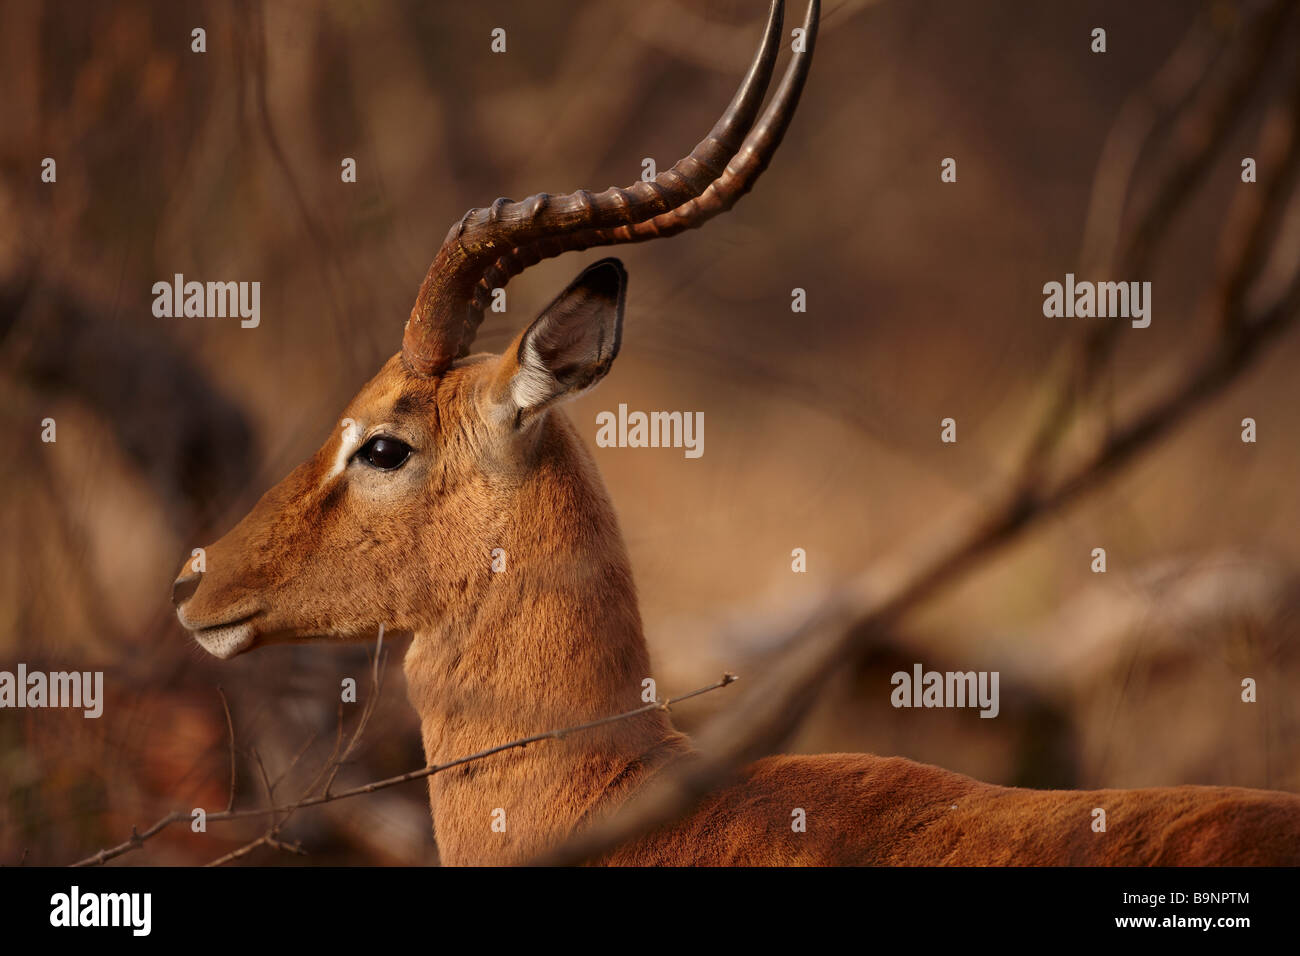 a bull impala, Kruger National Park, South Africa - Stock Image